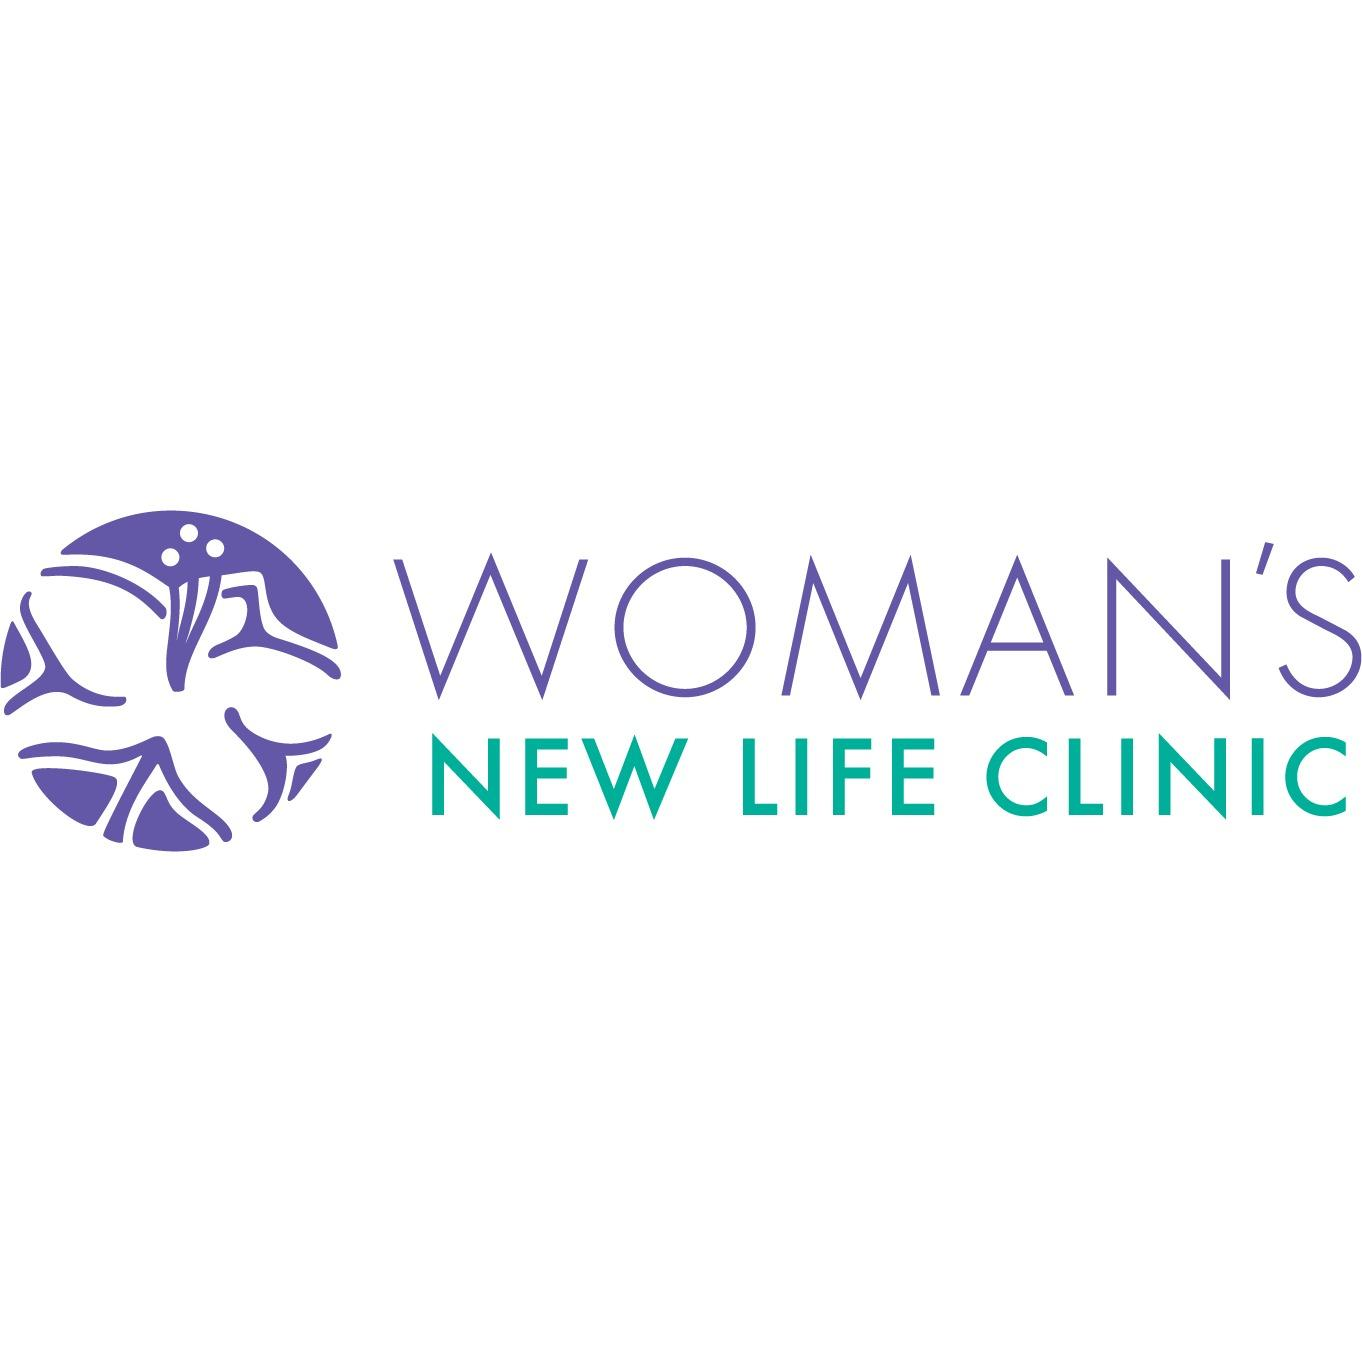 Woman's New Life Clinic